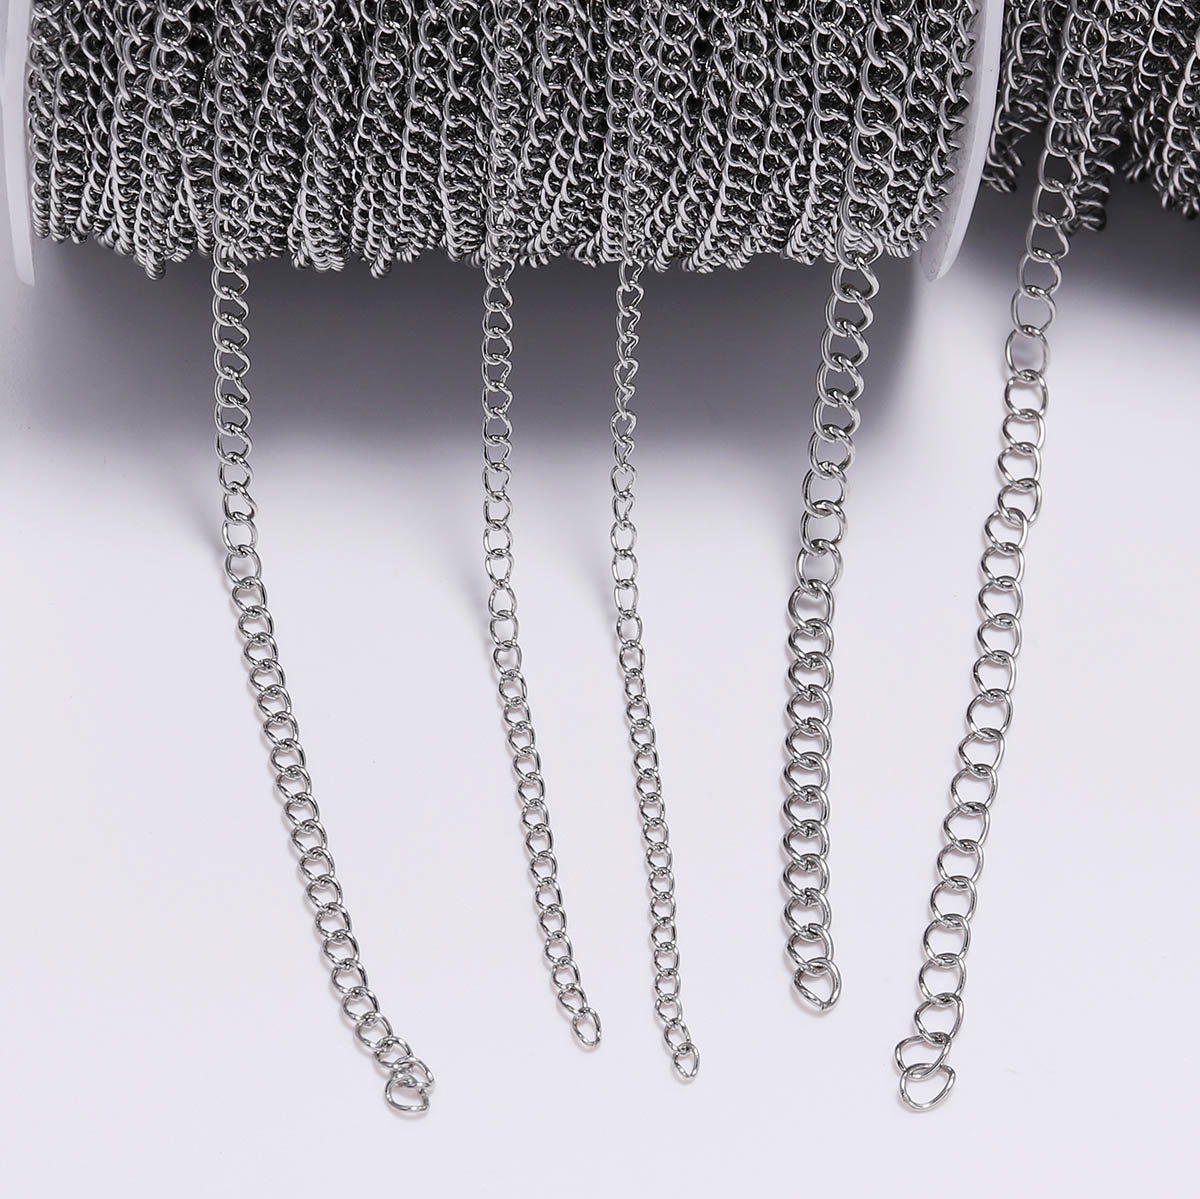 5m/Lot 1.2 2.2 2.4 3.0 4.0 Mm Stainless Steel Bulk Jewellery Chain For DIY Jewelry Making Necklace Earring Findings Accessories